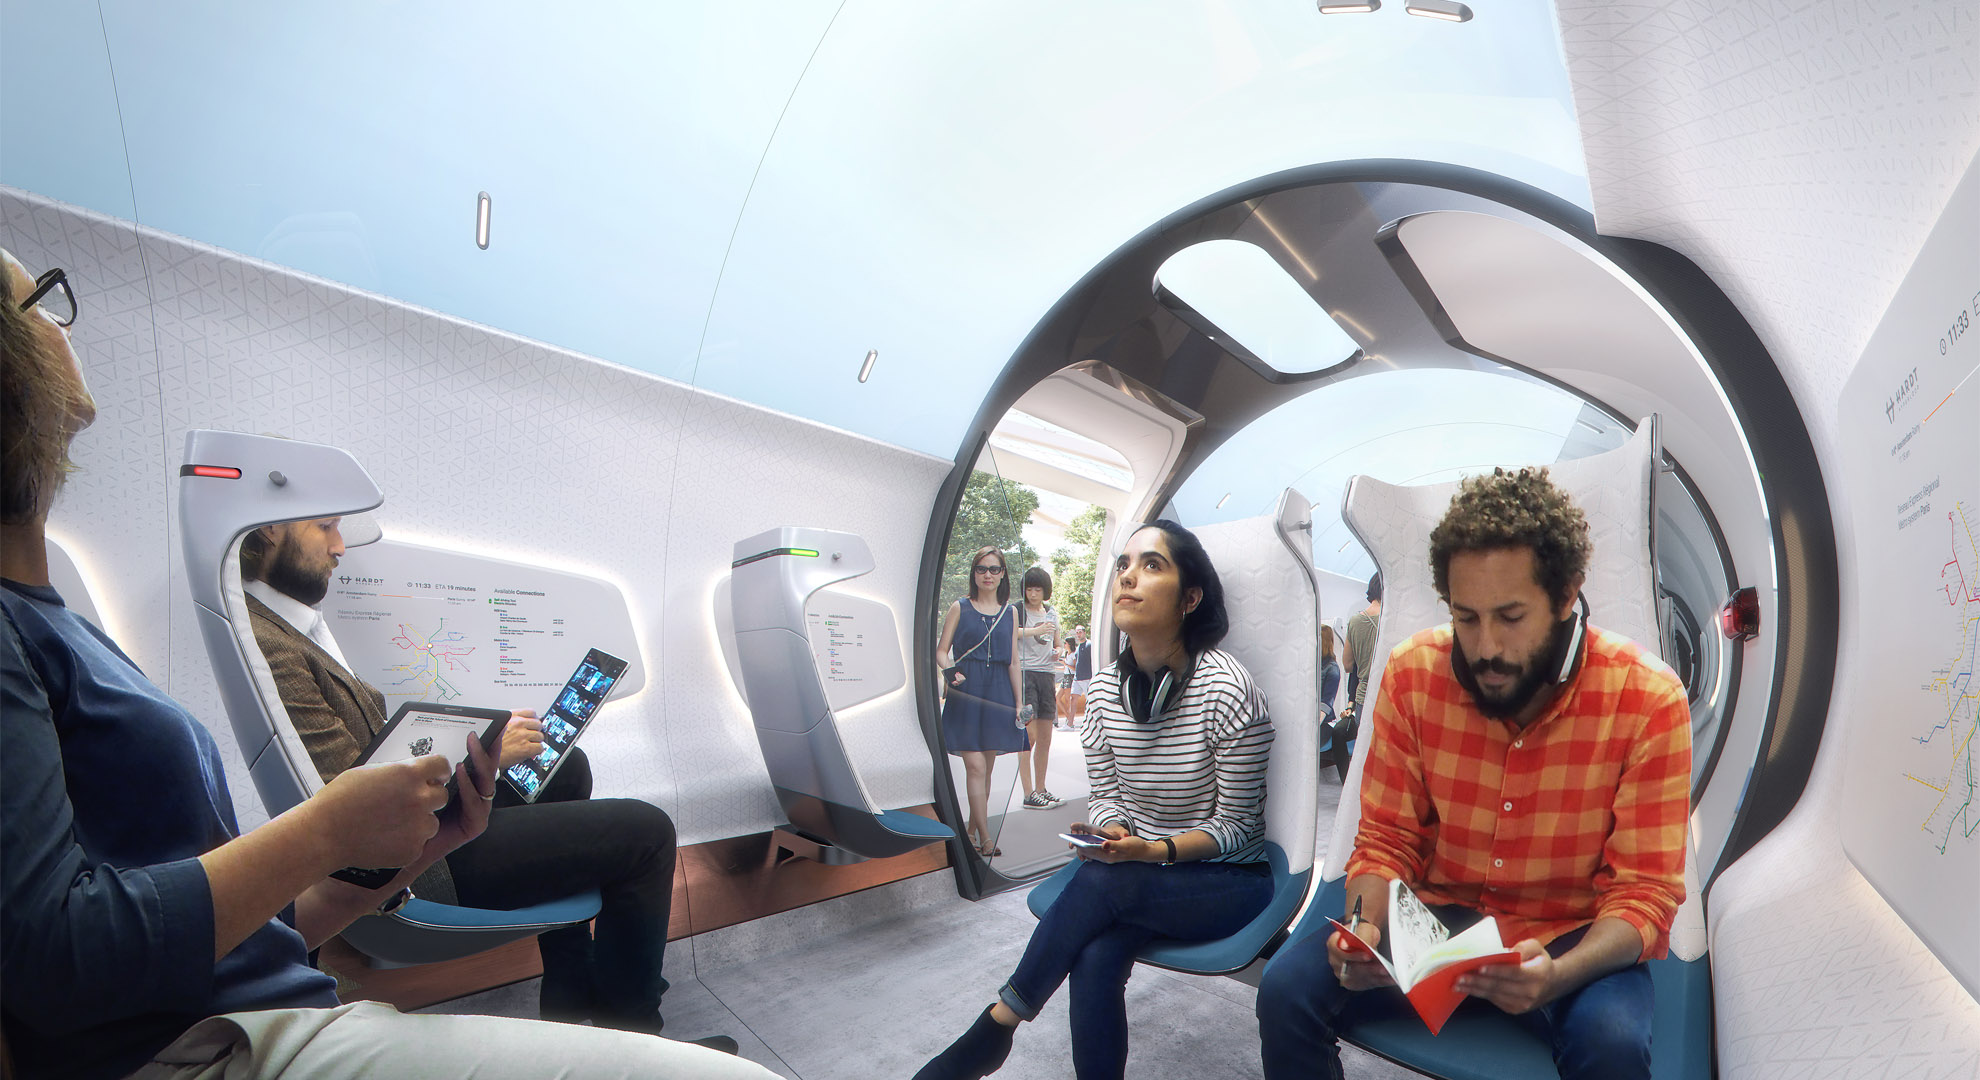 Hardt_HyperloopVehicle, UNStudio (design), Plompmozes (visualization)